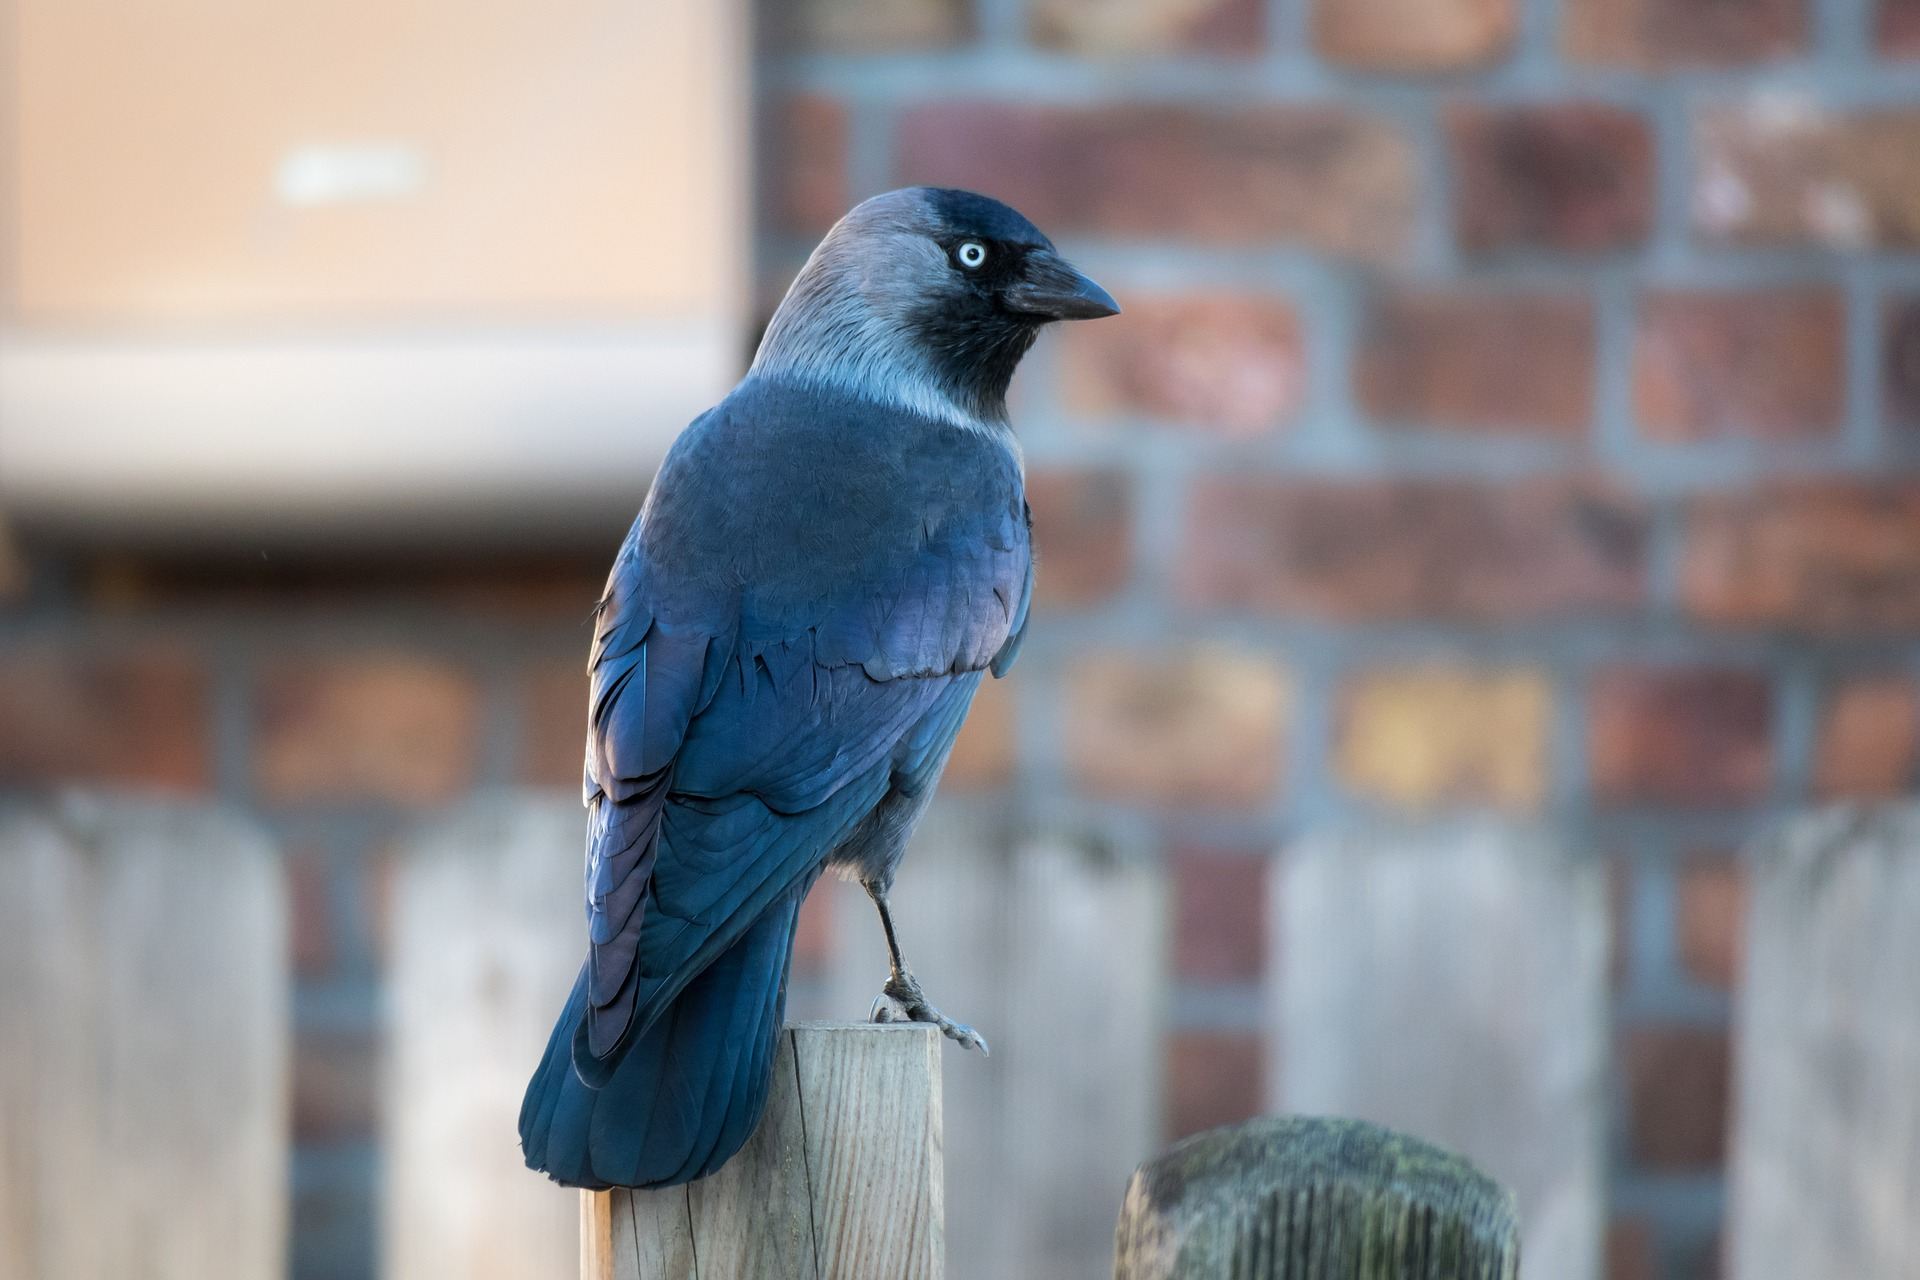 watch city birds during the coronavirus lockdown